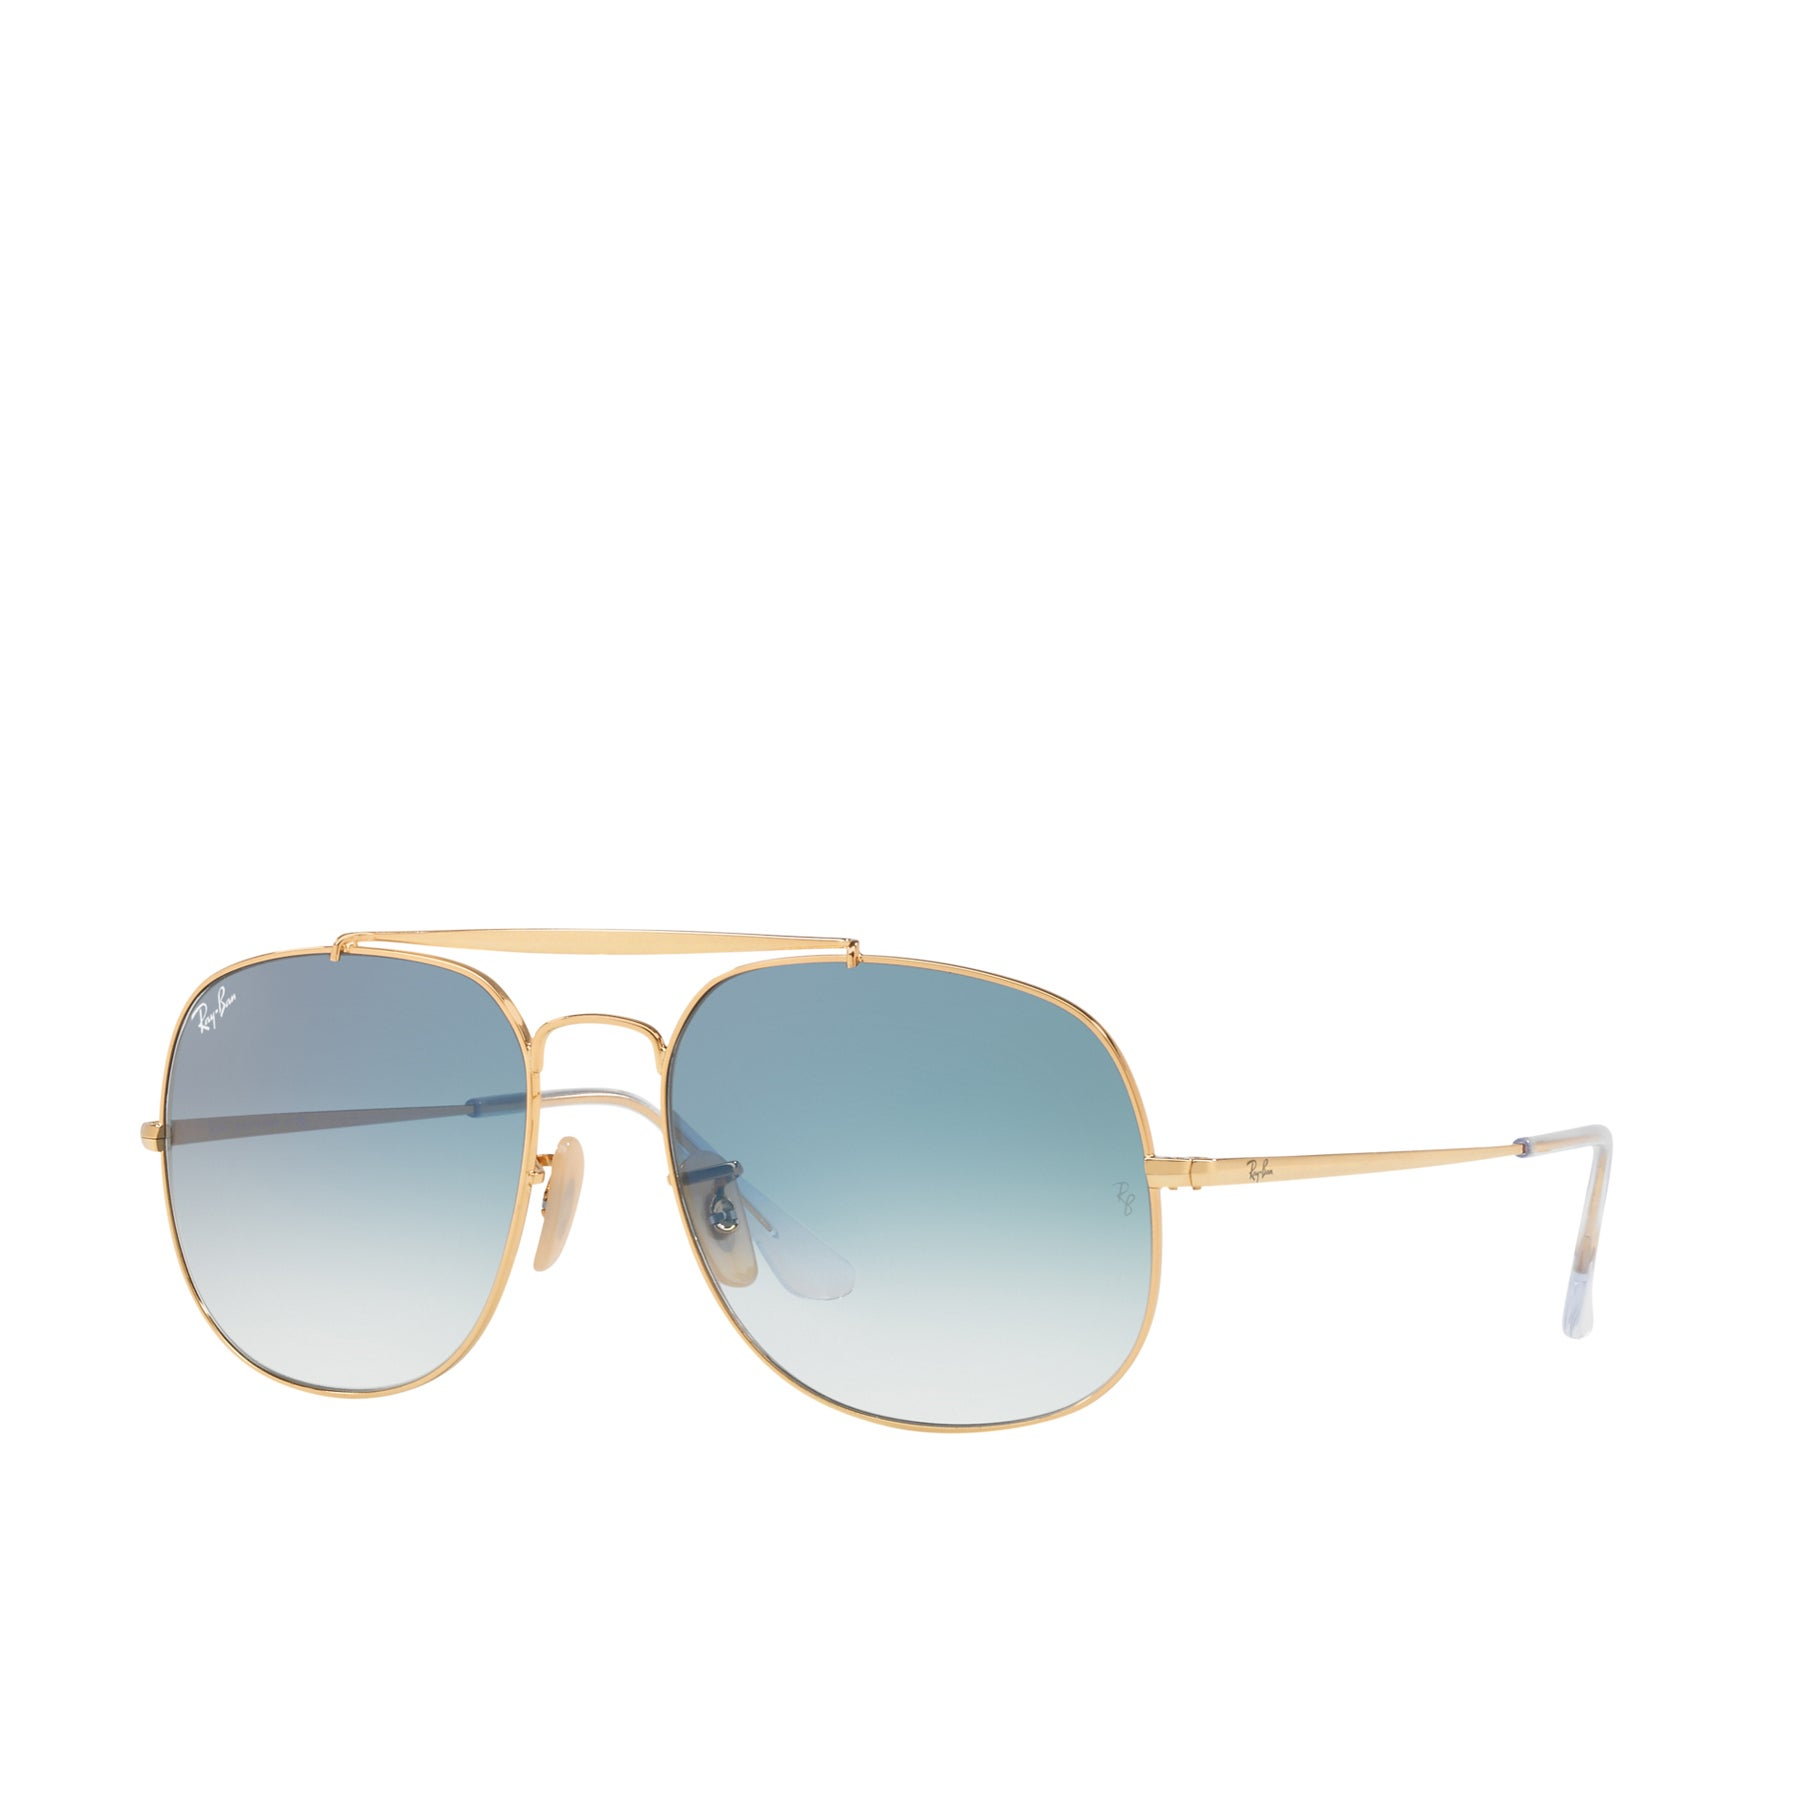 Ray-Ban RB3561 Sunglasses - Gold Blue Gradient